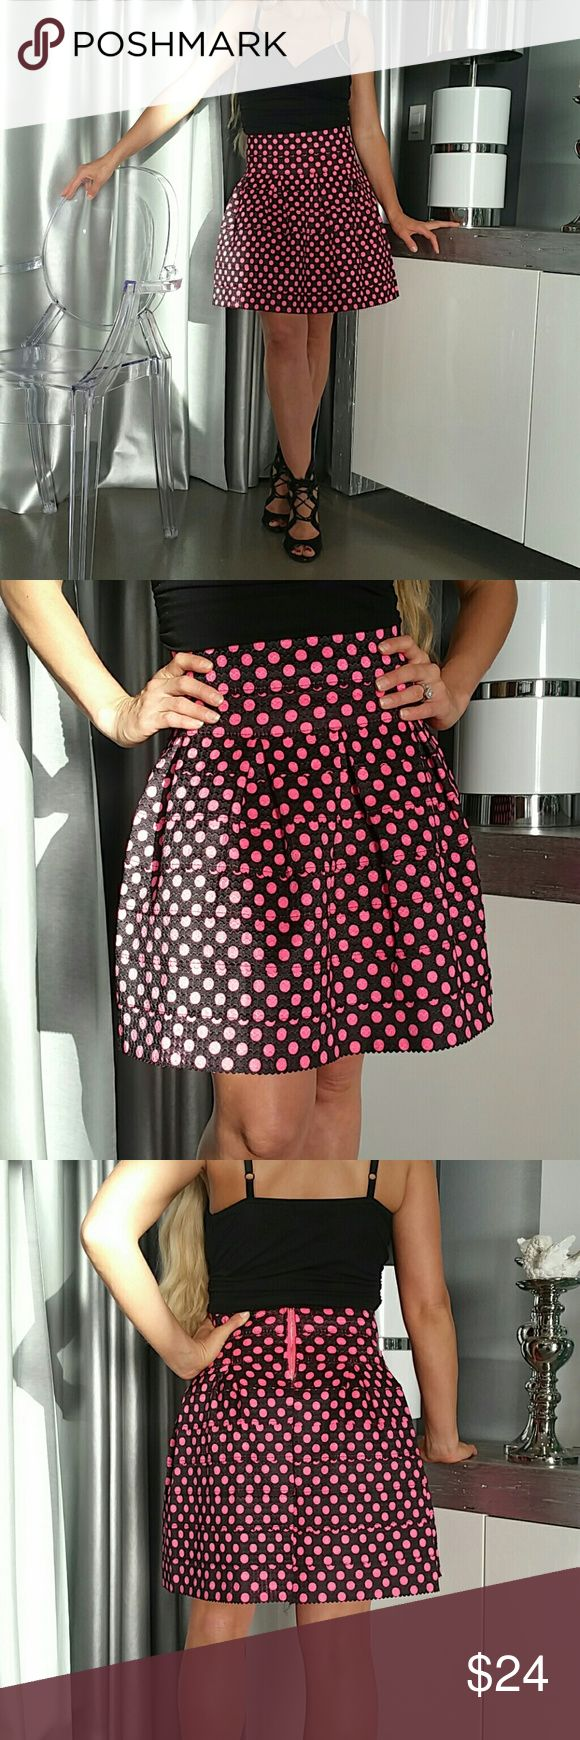 Gorgeous pink polka-dot skirt. NWT Honored Host Pick Brand new with tags.  Rows of black elastic with vibrant pink polka dots all over. Pair with a black top, blazer and heels or with a playful white top and booties with a denim jacket.   Zipper detail in back  Stretchy material. Overall length 18 inches  80% polyester 20% elastic  Vacation event special occasion a line party Skirts A-Line or Full